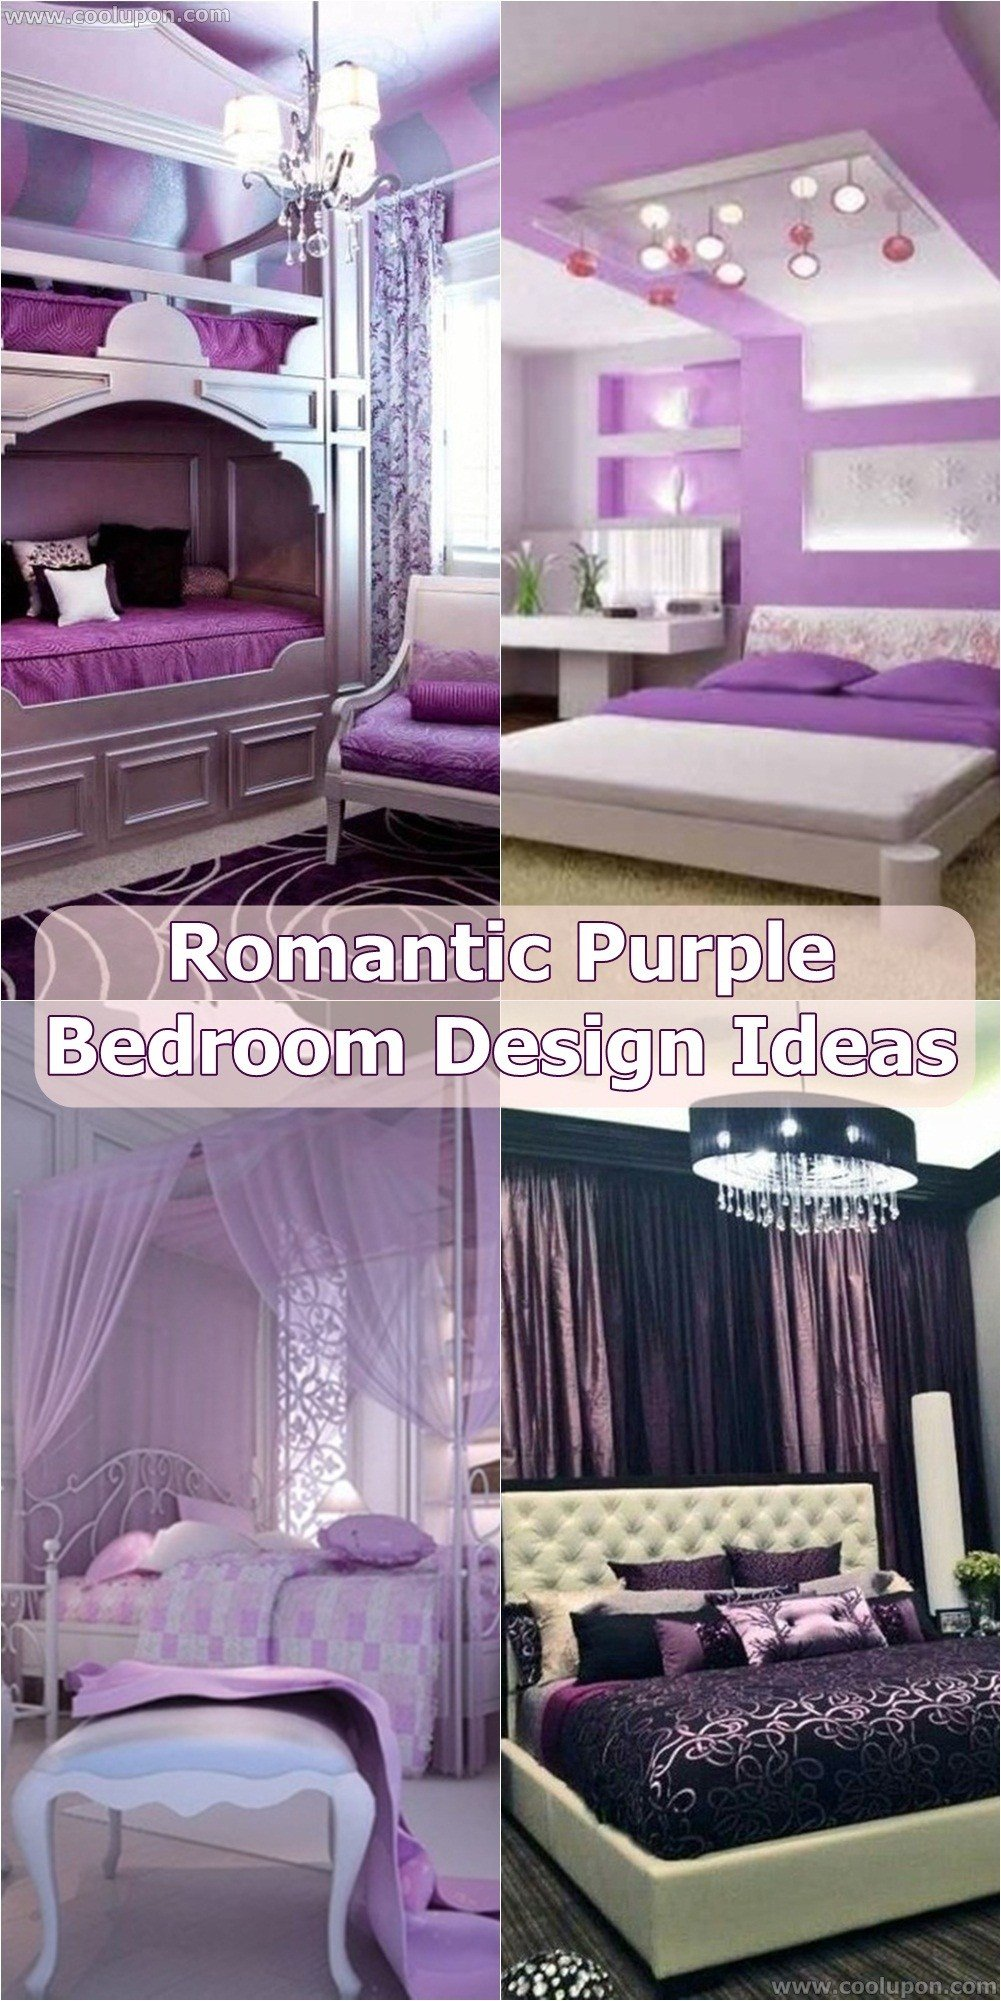 Best 25 Brilliant Romantic Purple Bedroom Design Ideas Coolupon With Pictures